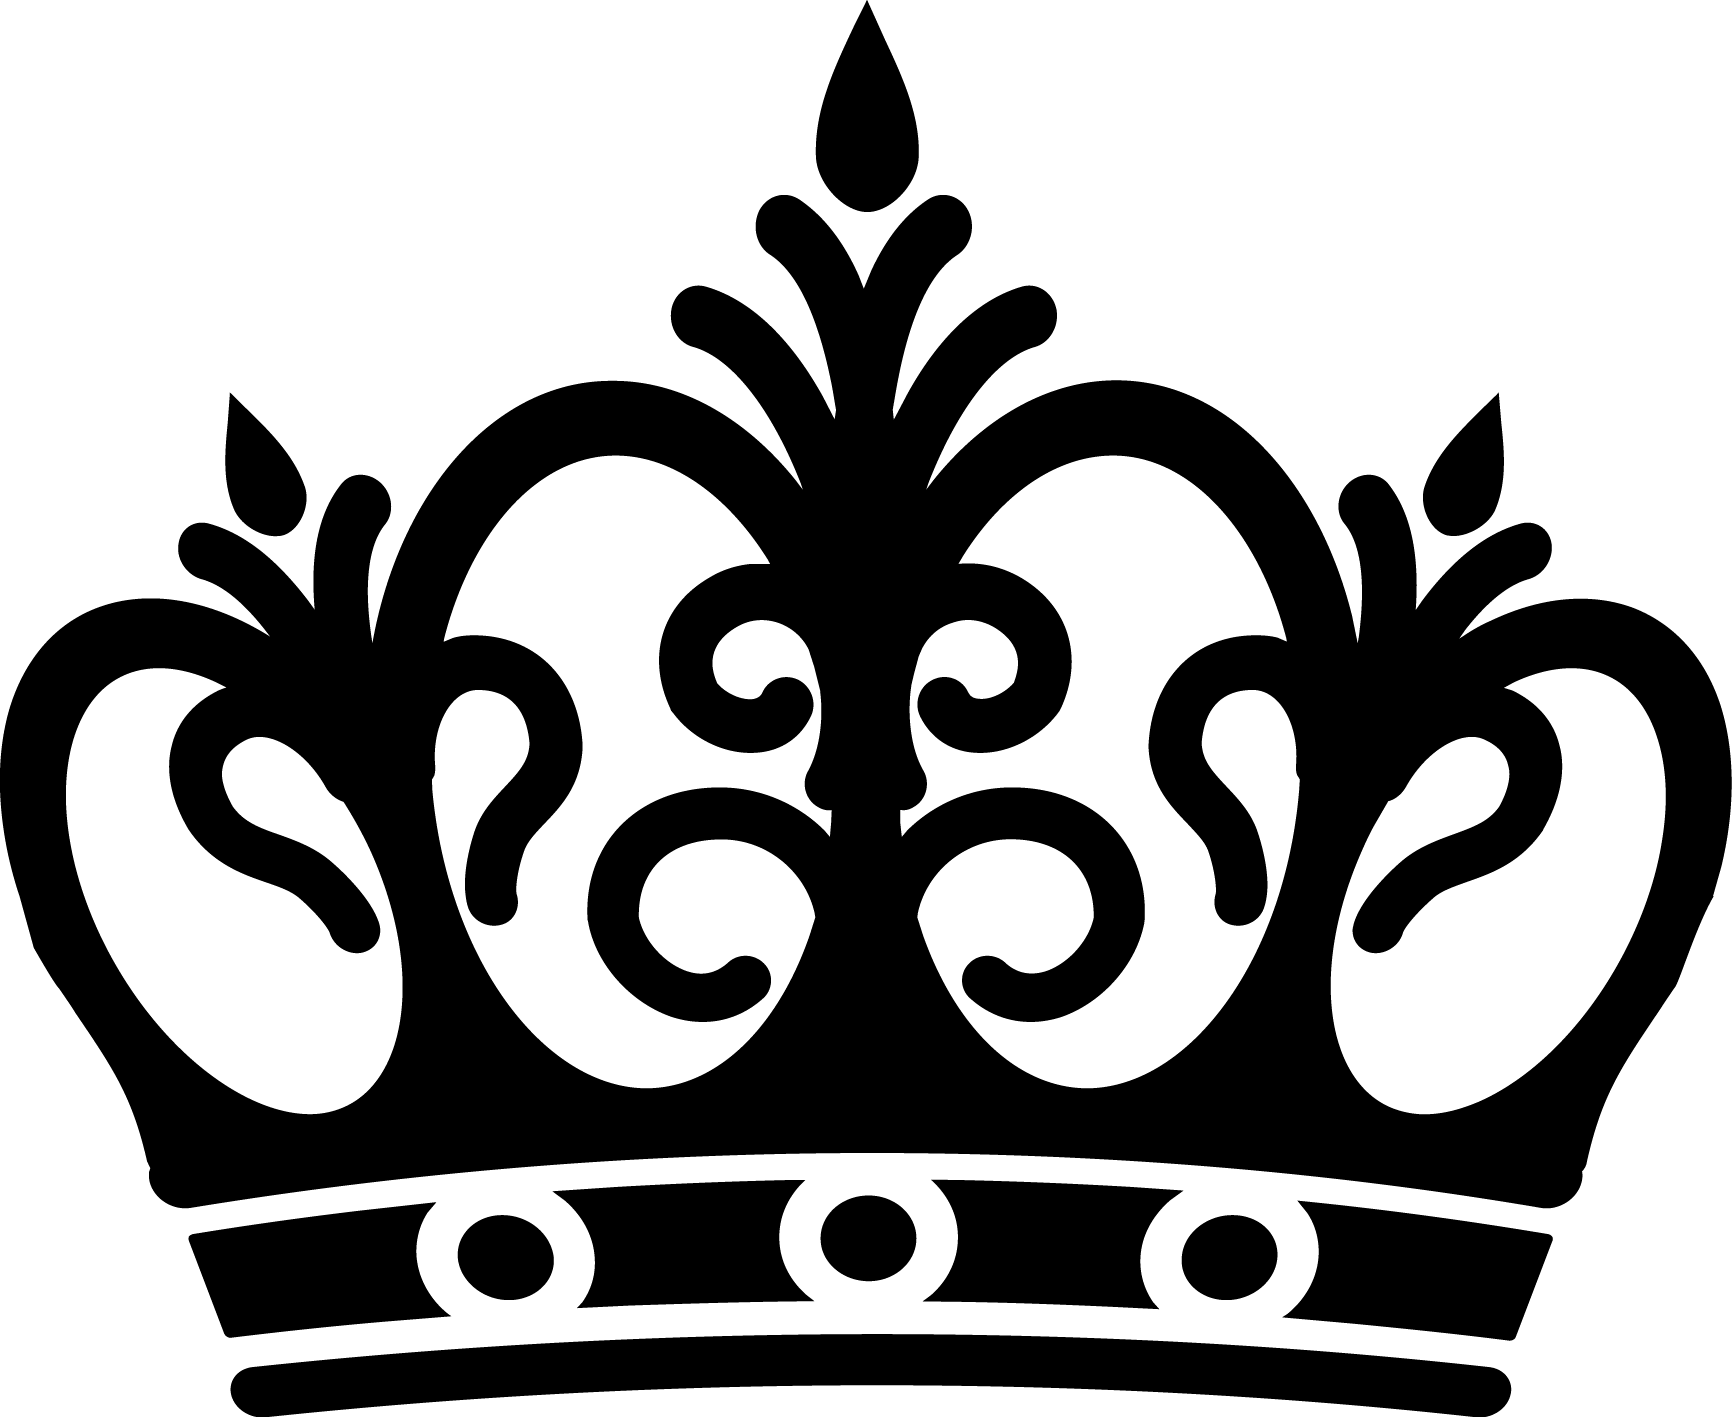 Man crown clipart svg library crown vector png - Buscar con Google | Tatuajes | Pinterest | Crown ... svg library